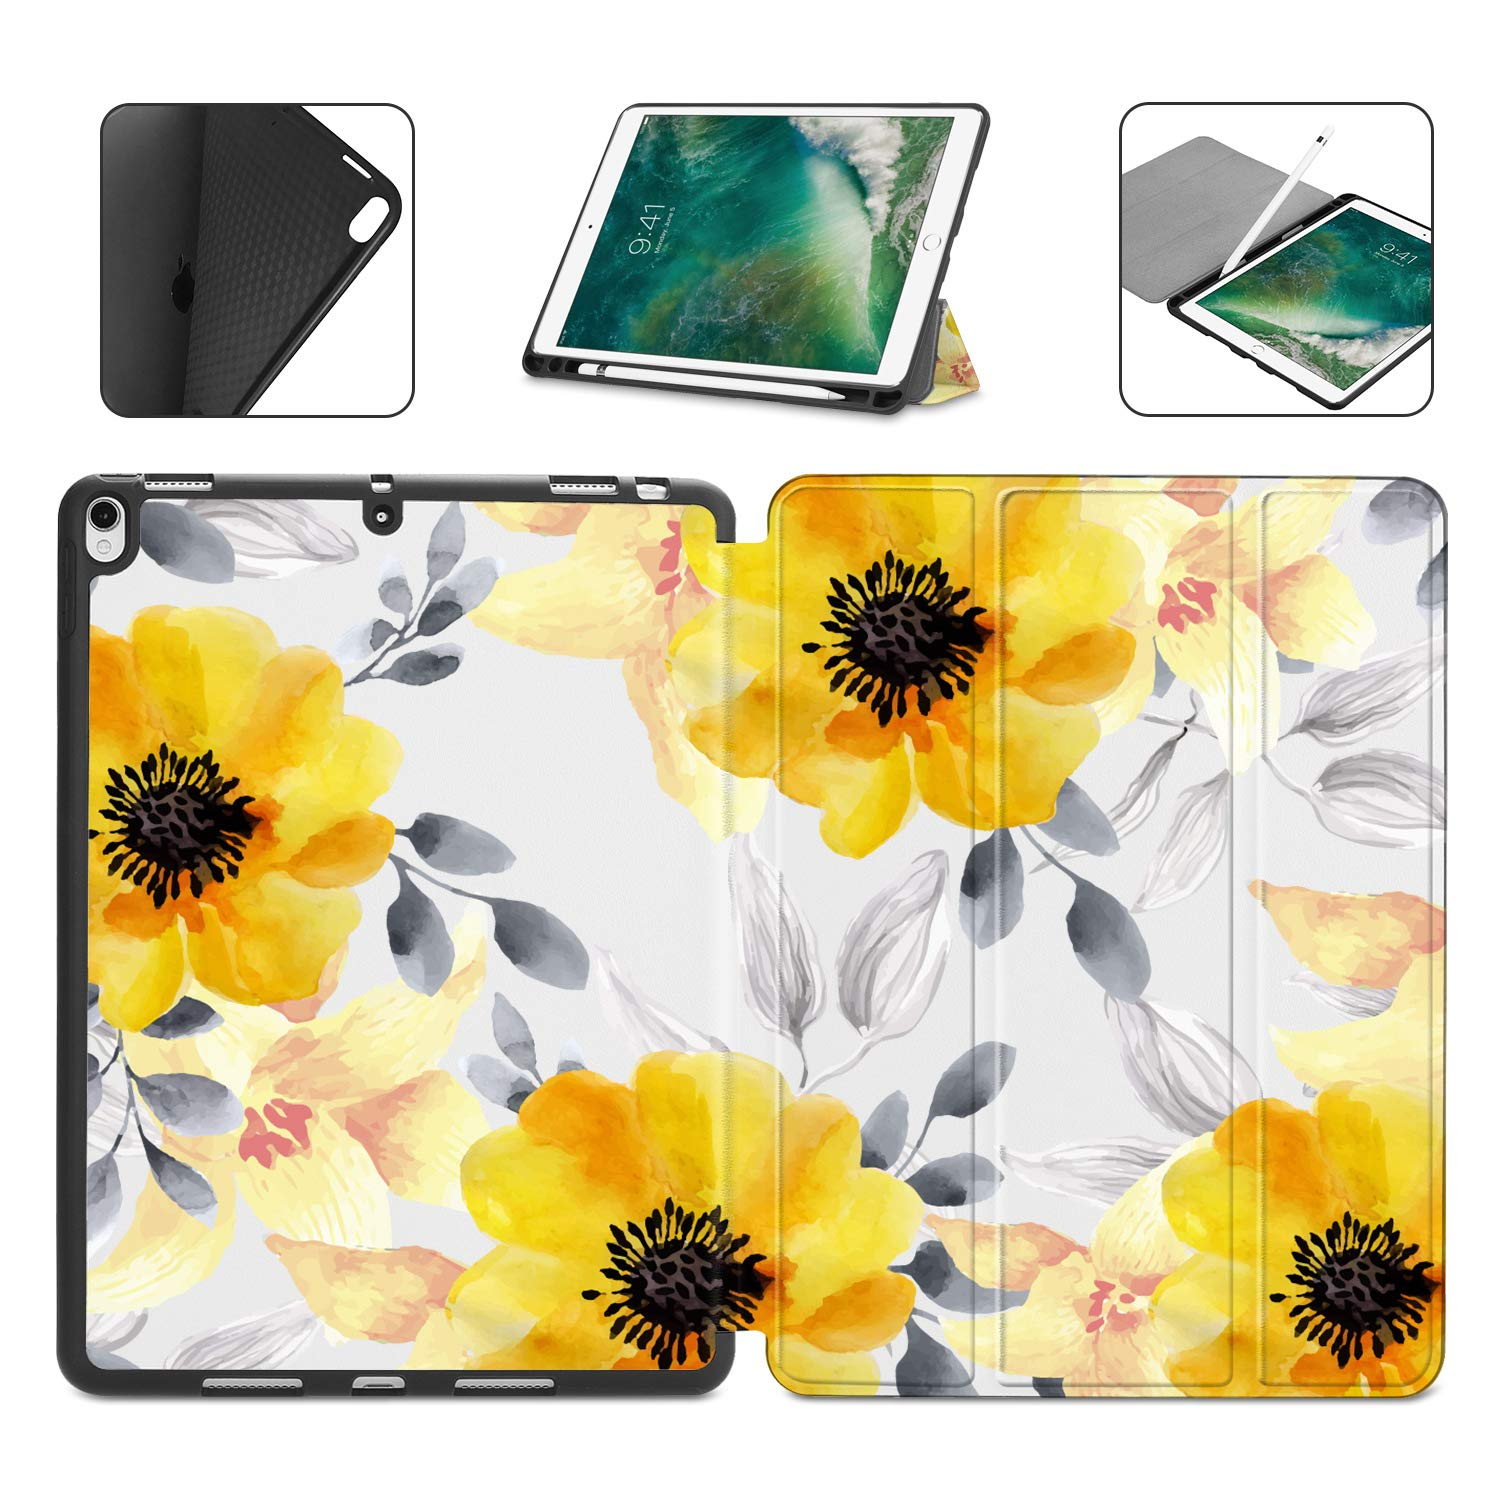 2019 with Pencil Holder 3rd Gen Ultra Slim TPU Smart Case Cover with Auto Wake//Sleep Function Compatible with New iPad Air 3 2019// iPad Pro 10.5 Case for iPad Pro 10.5 /& iPad Air 10.5